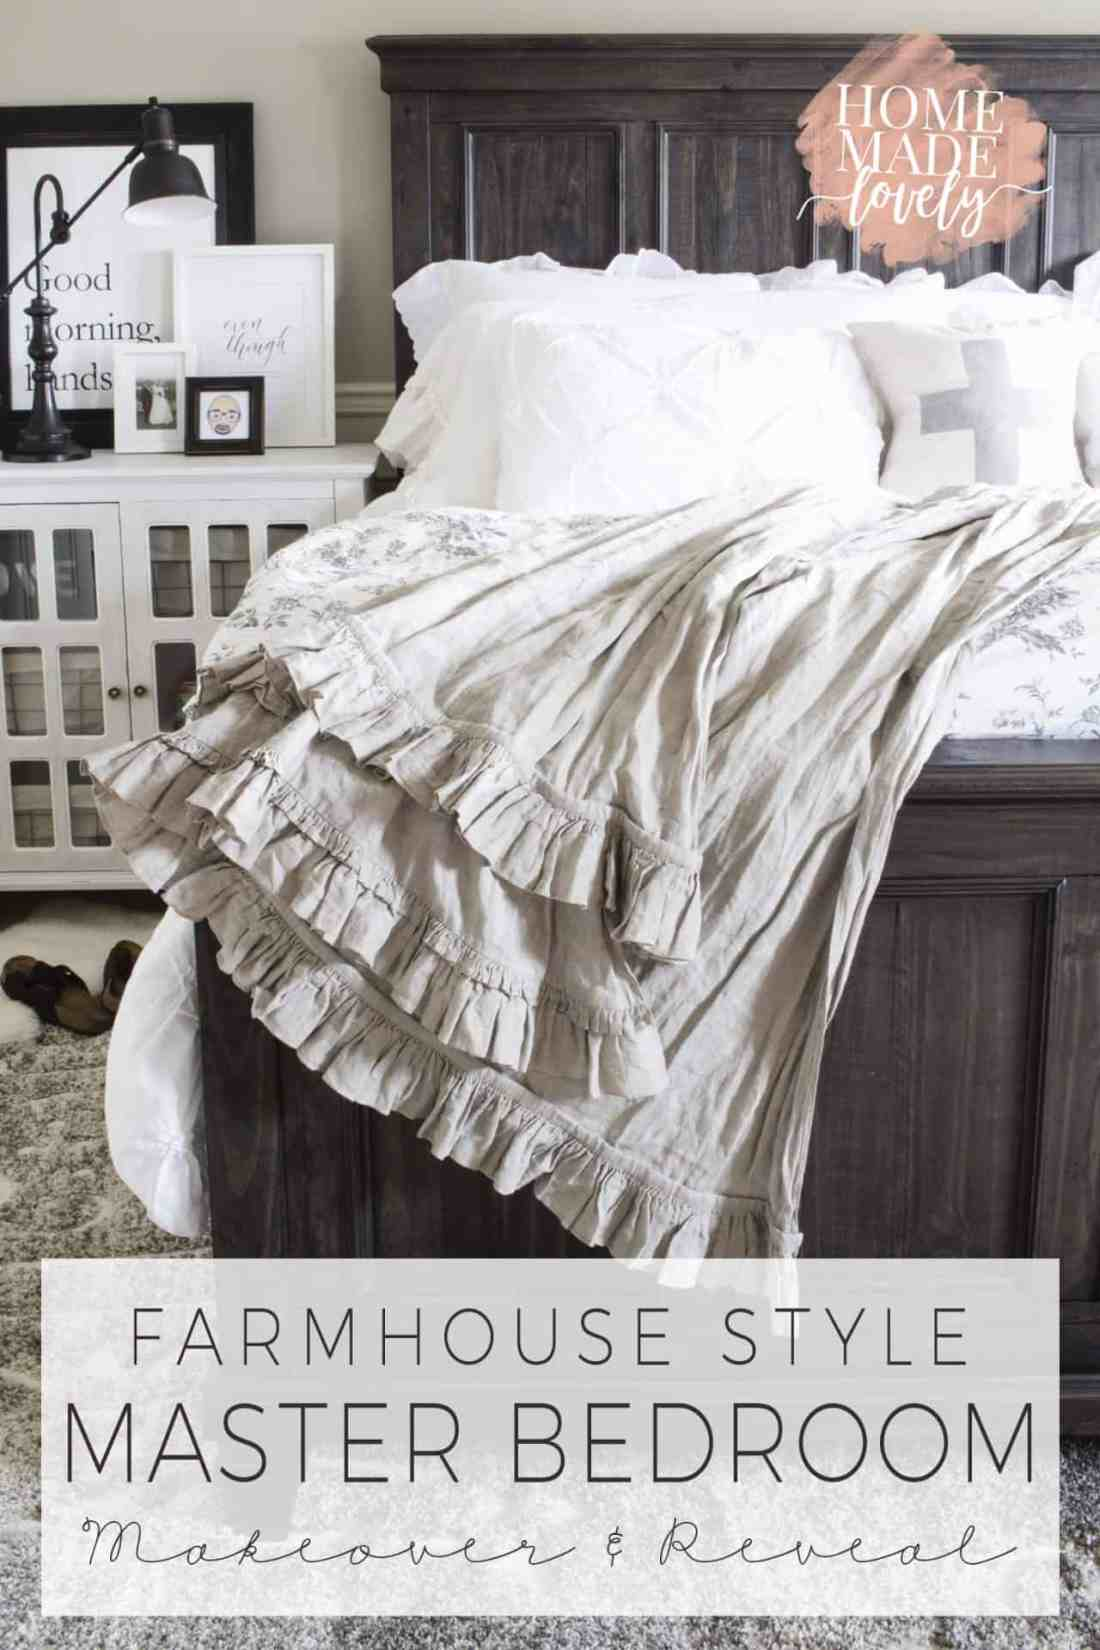 Master Bedroom Makeover After: Farmhouse Style Master Bedroom Makeover Reveal